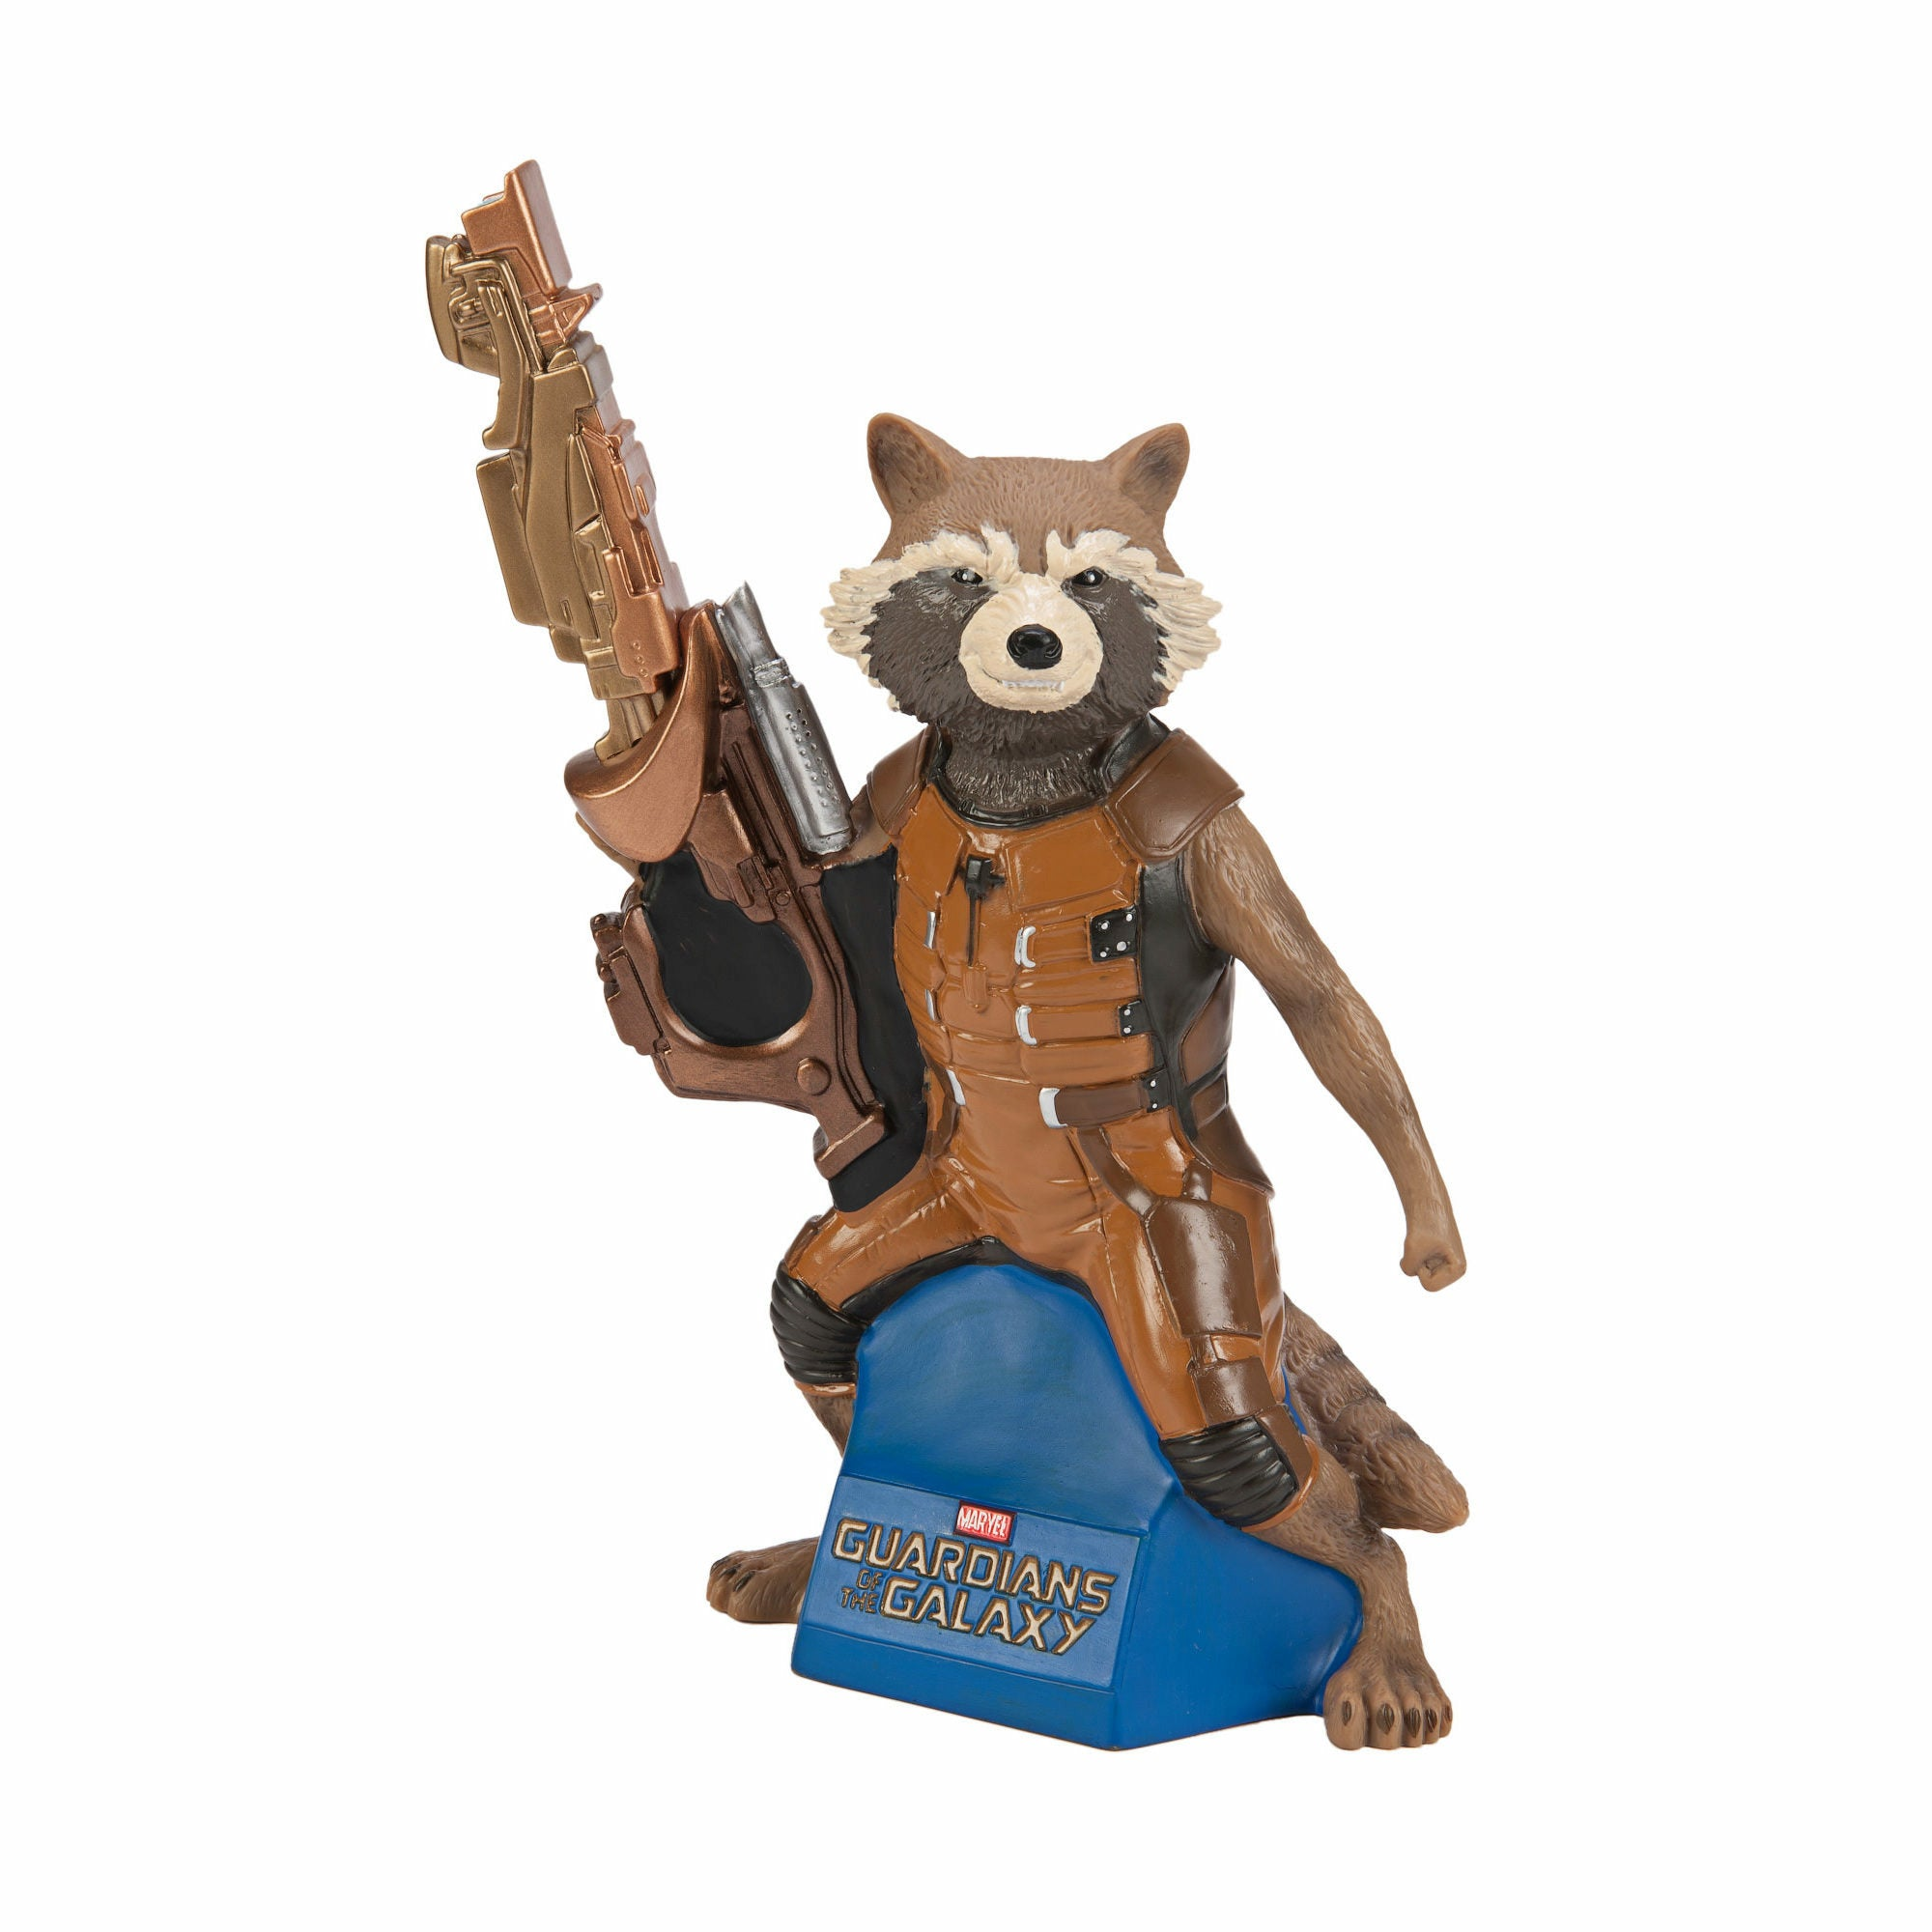 Marvel Guardians of the Galaxy Rocket Raccoon Figural Coin Bank - EE Exclusive